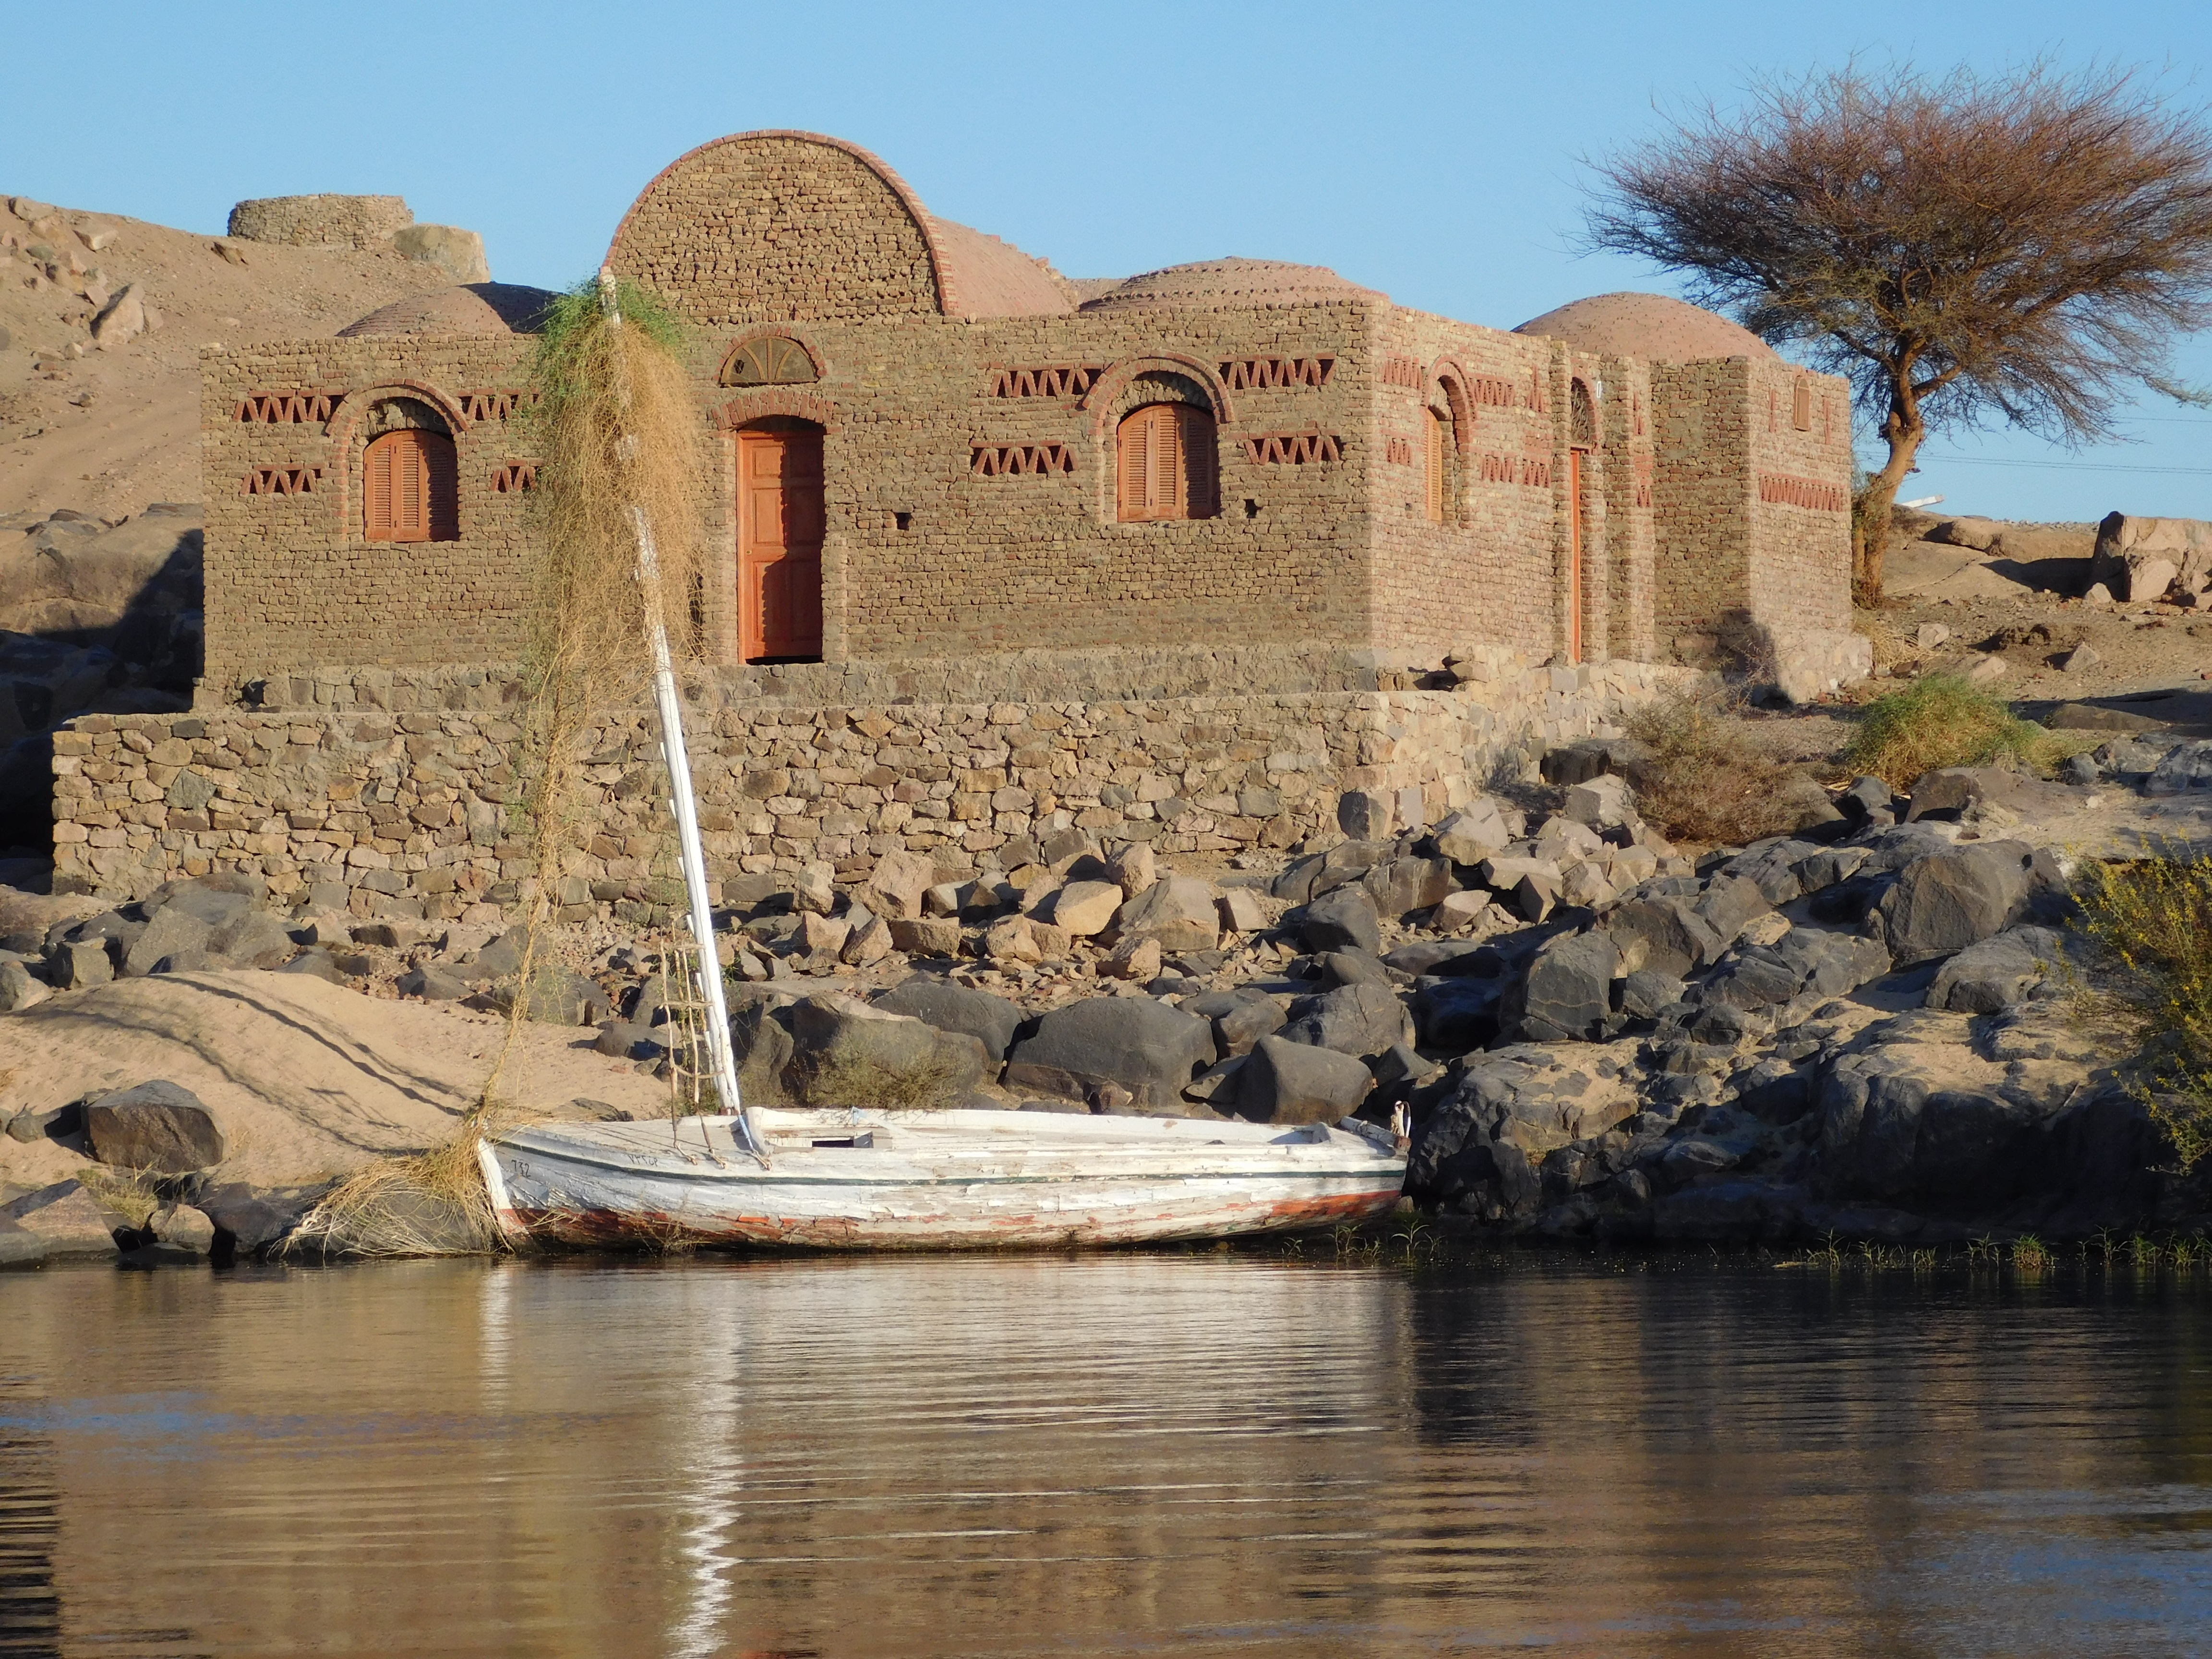 Temple on the Shore of the Nile River